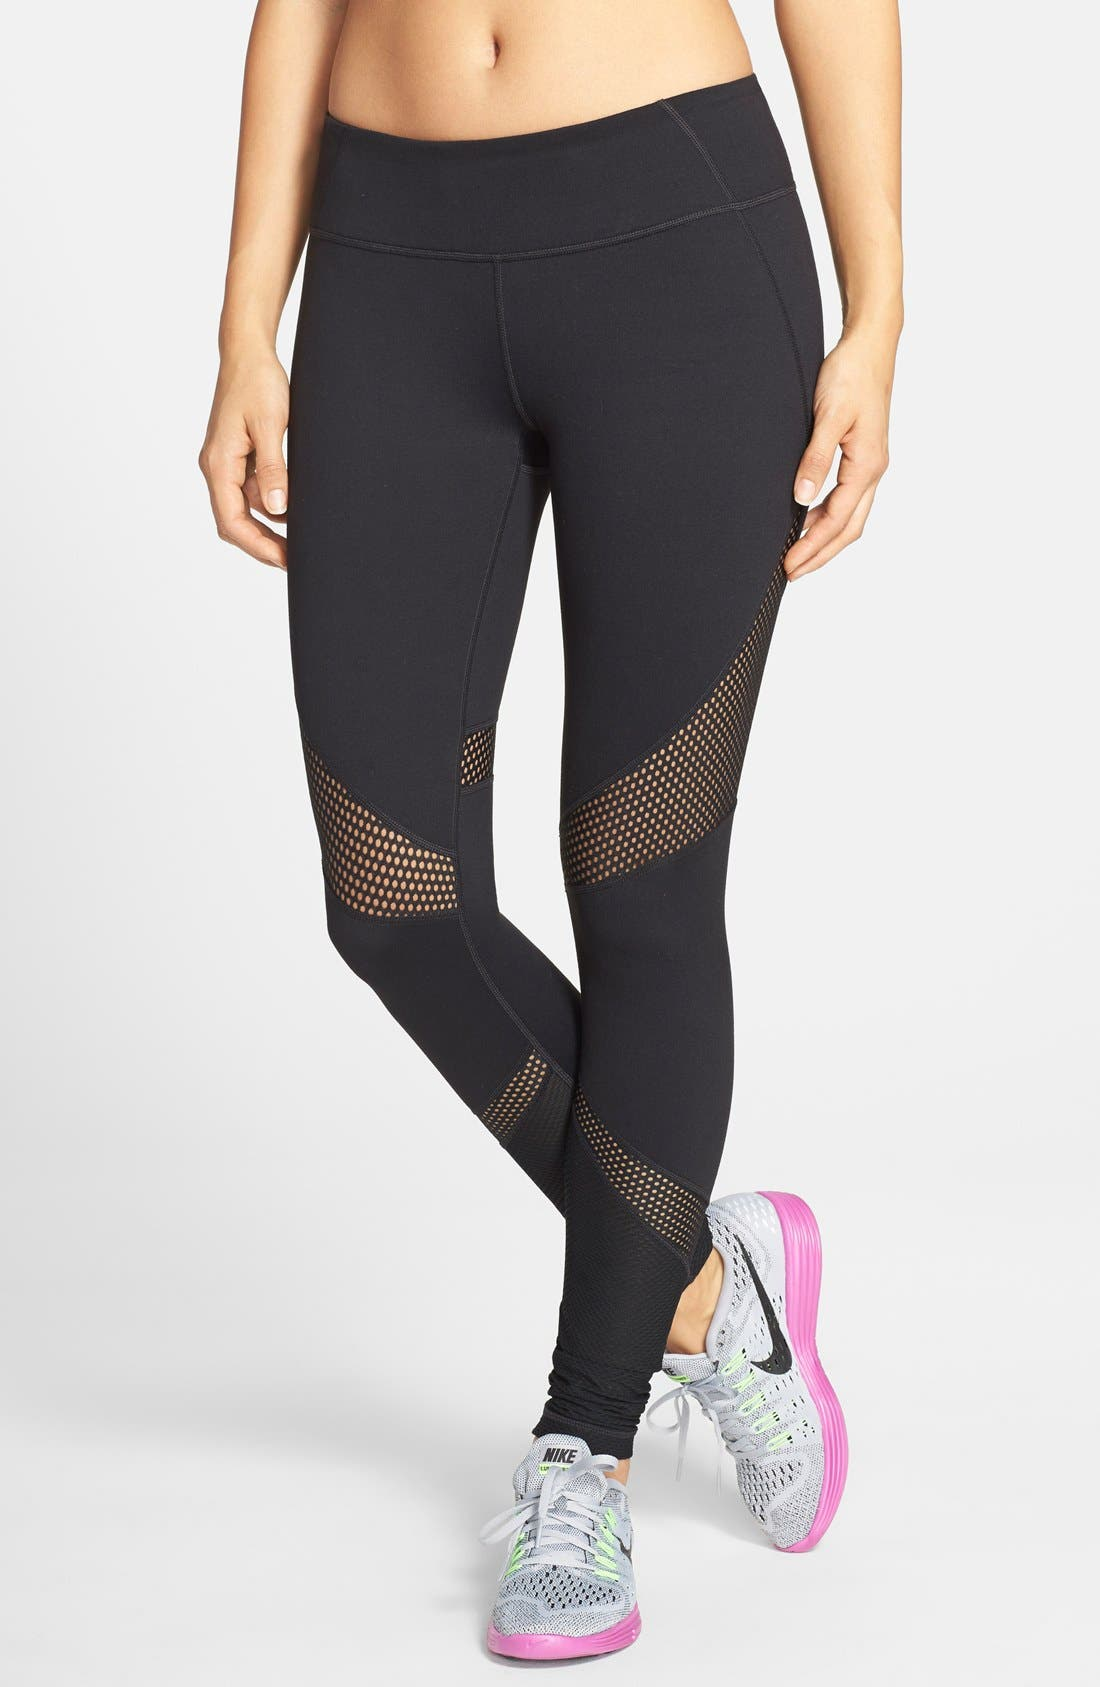 'Live In - Out of Bounds' Slim Fit Leggings,                             Main thumbnail 1, color,                             Black